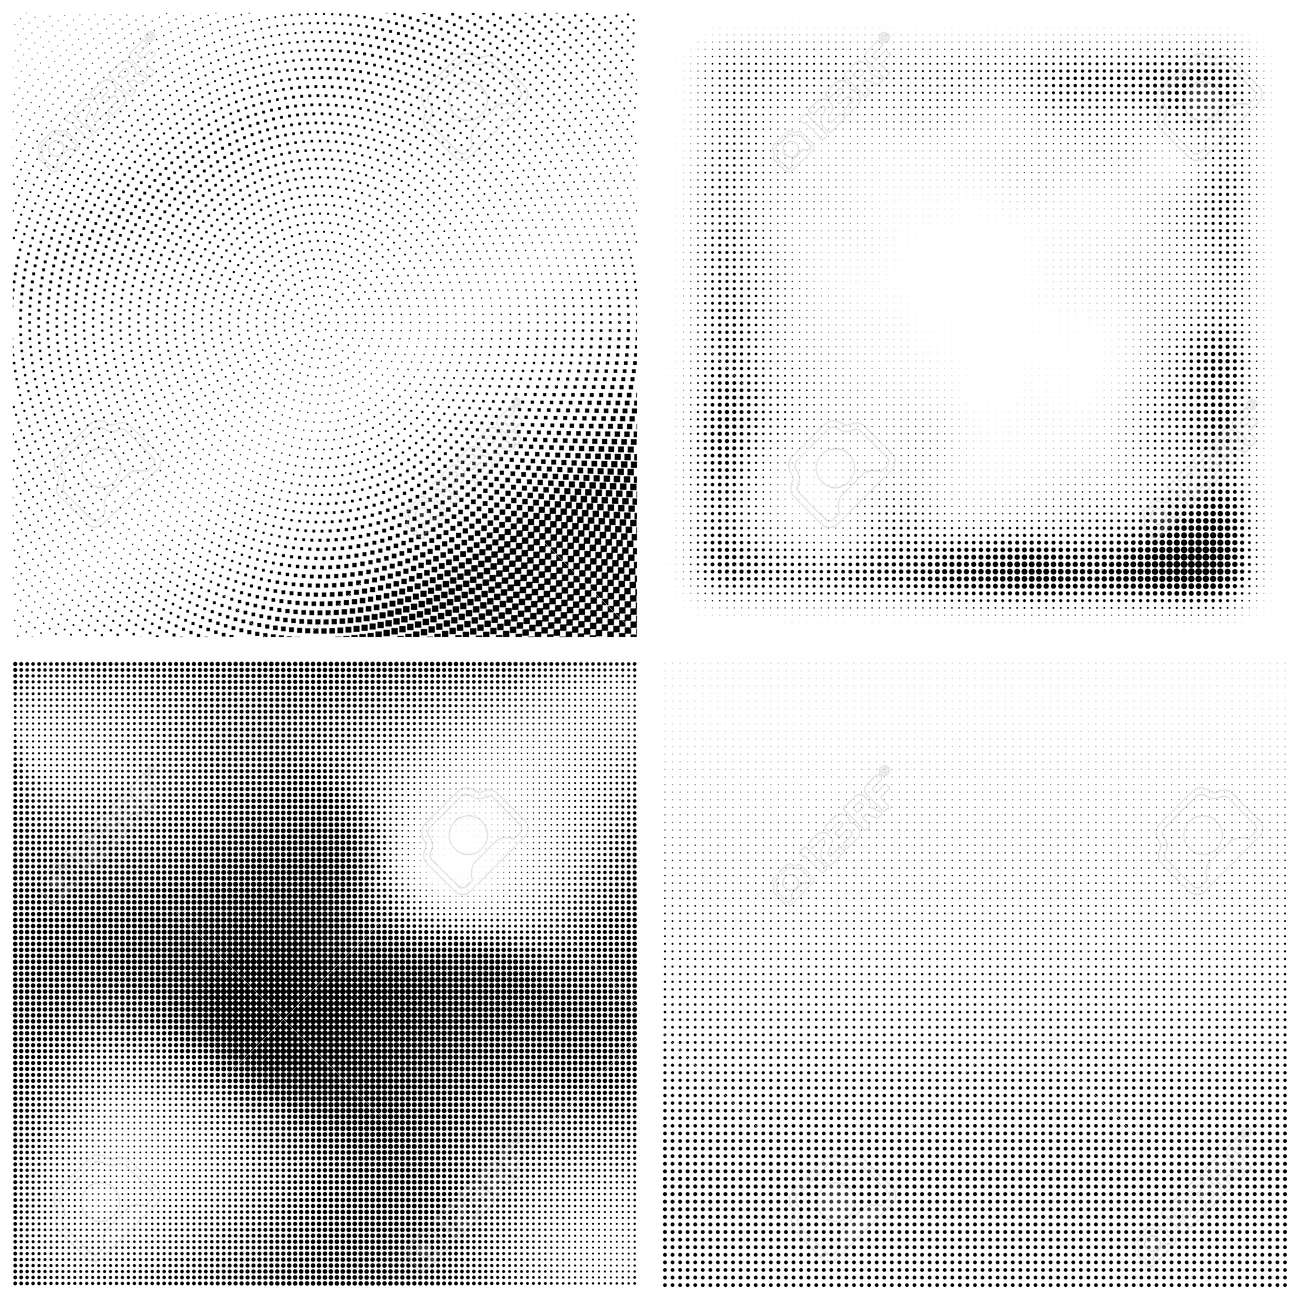 Halftone Pattern. Set of Dots. Dotted Texture on White Background. Overlay Grunge Template. Distress Linear Design. Fade Monochrome Points. Pop Art Backdrop. - 147865170